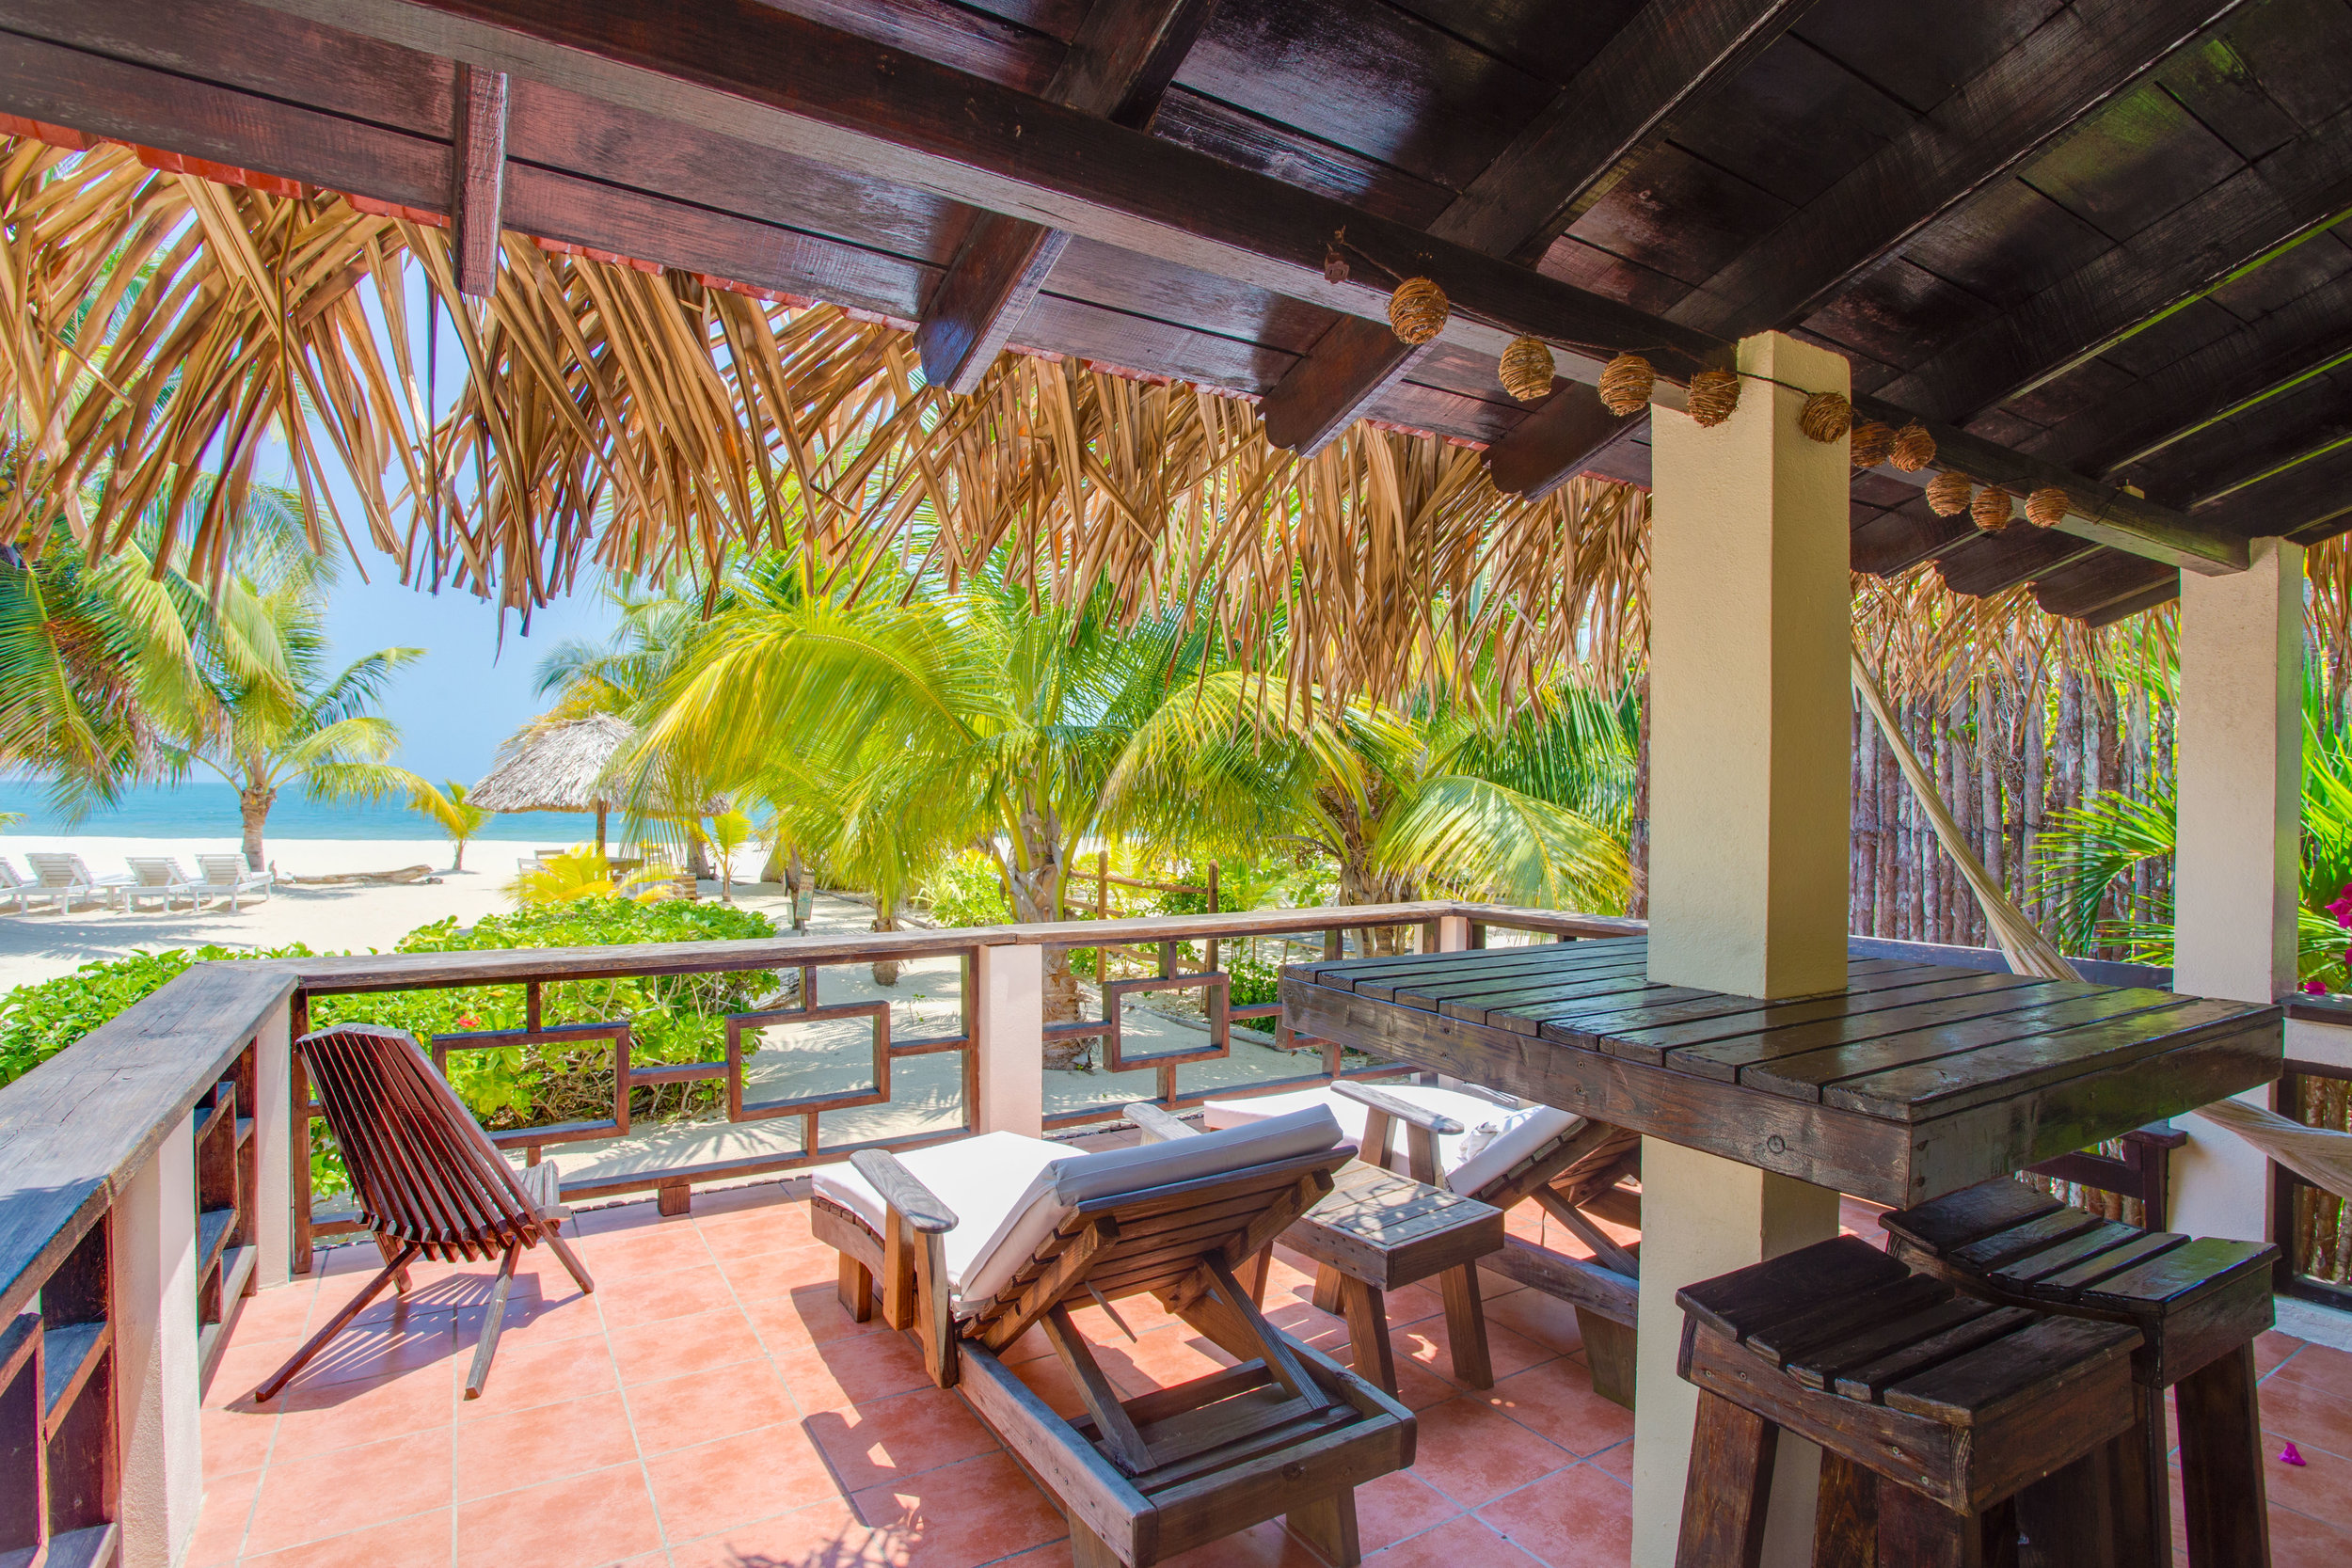 Our extra large verandas seat 8+ - they provide multiple seating options so you can enjoy every activity on your private veranda - cushioned loungers, barstools, bench, clam chairs, and hammock - this is one of many stunning views off Sol veranda